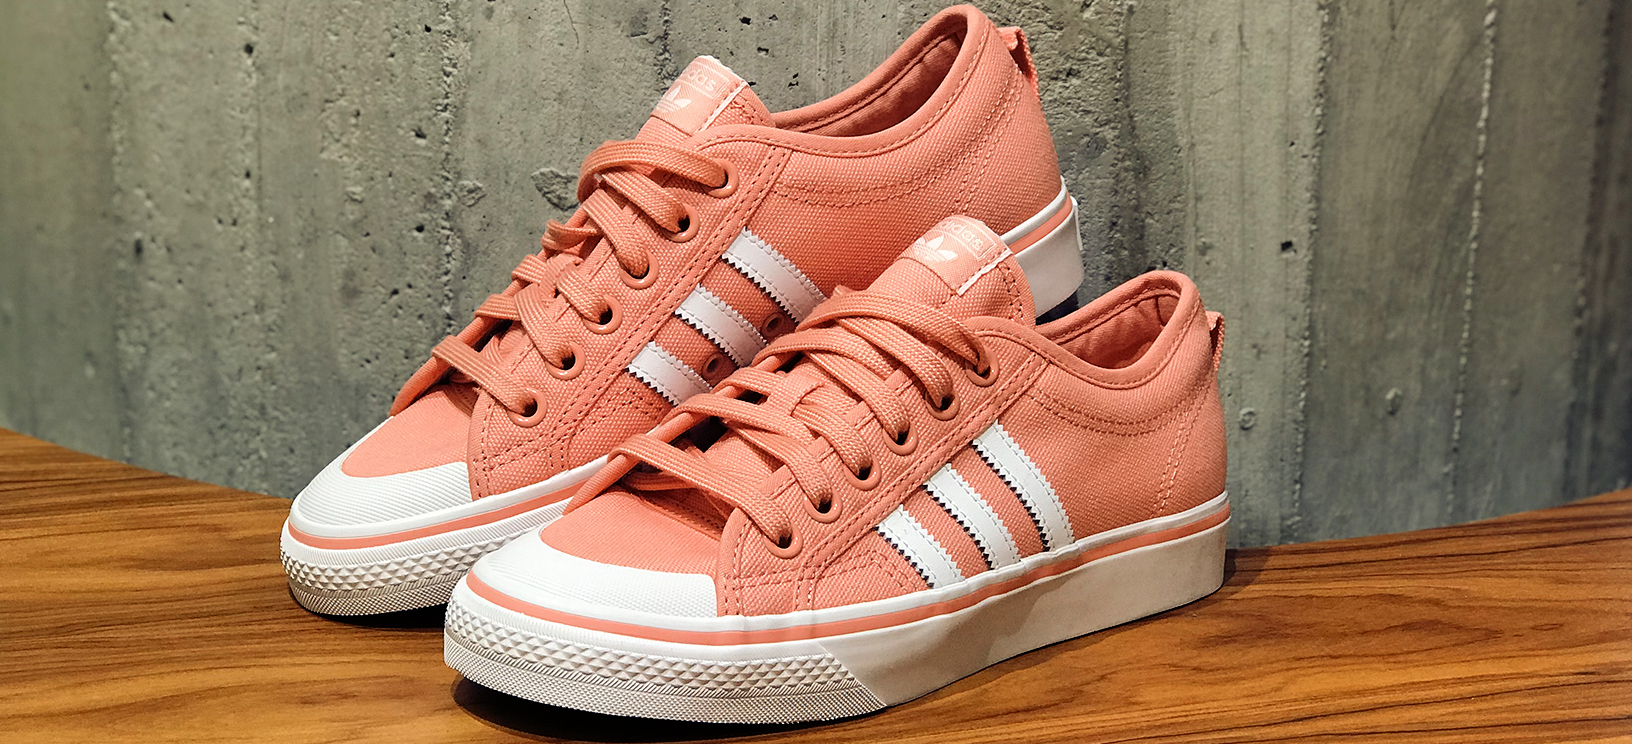 Our Edition - Adidas